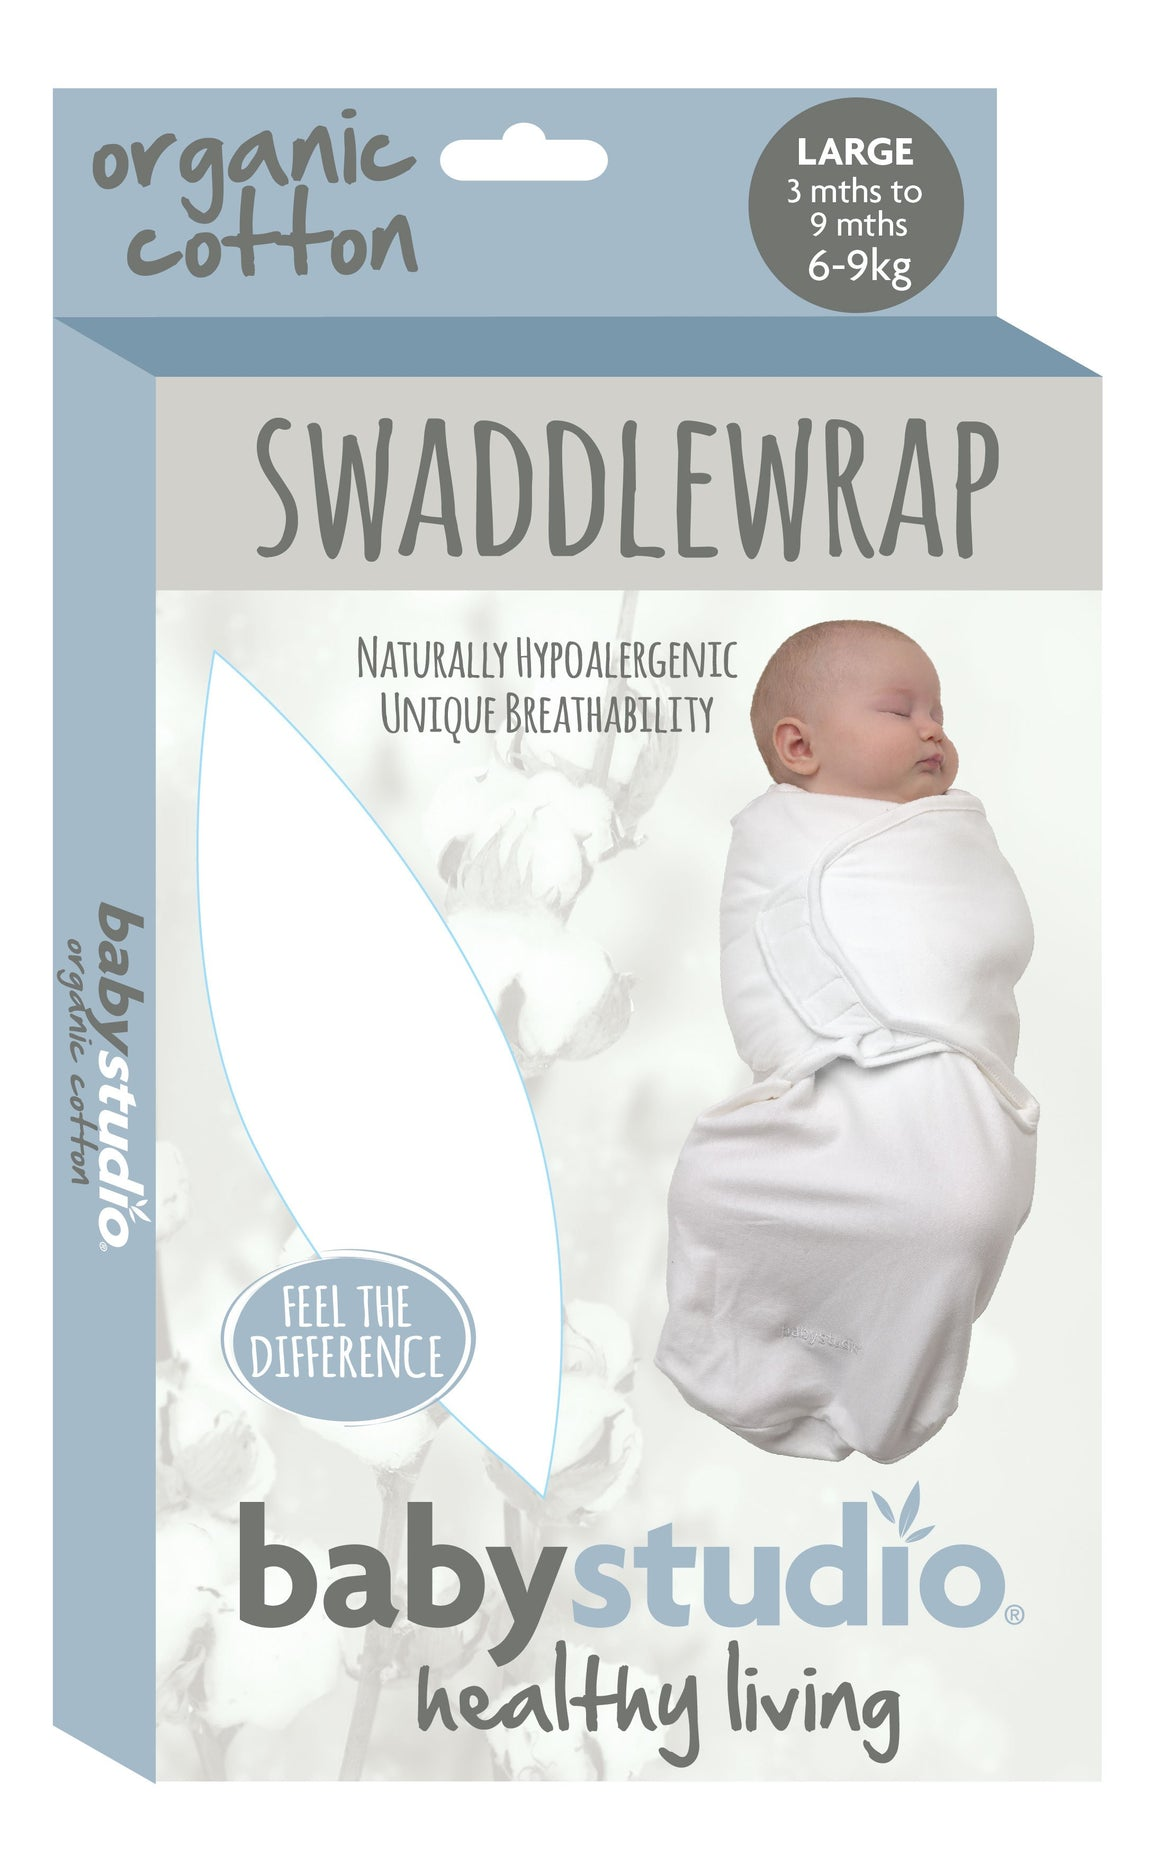 ORGANIC COTTON SWADDLEWRAP SMALL 0-3M 1.0 TOG - NAVY *AVAILABLE FEB 2020*